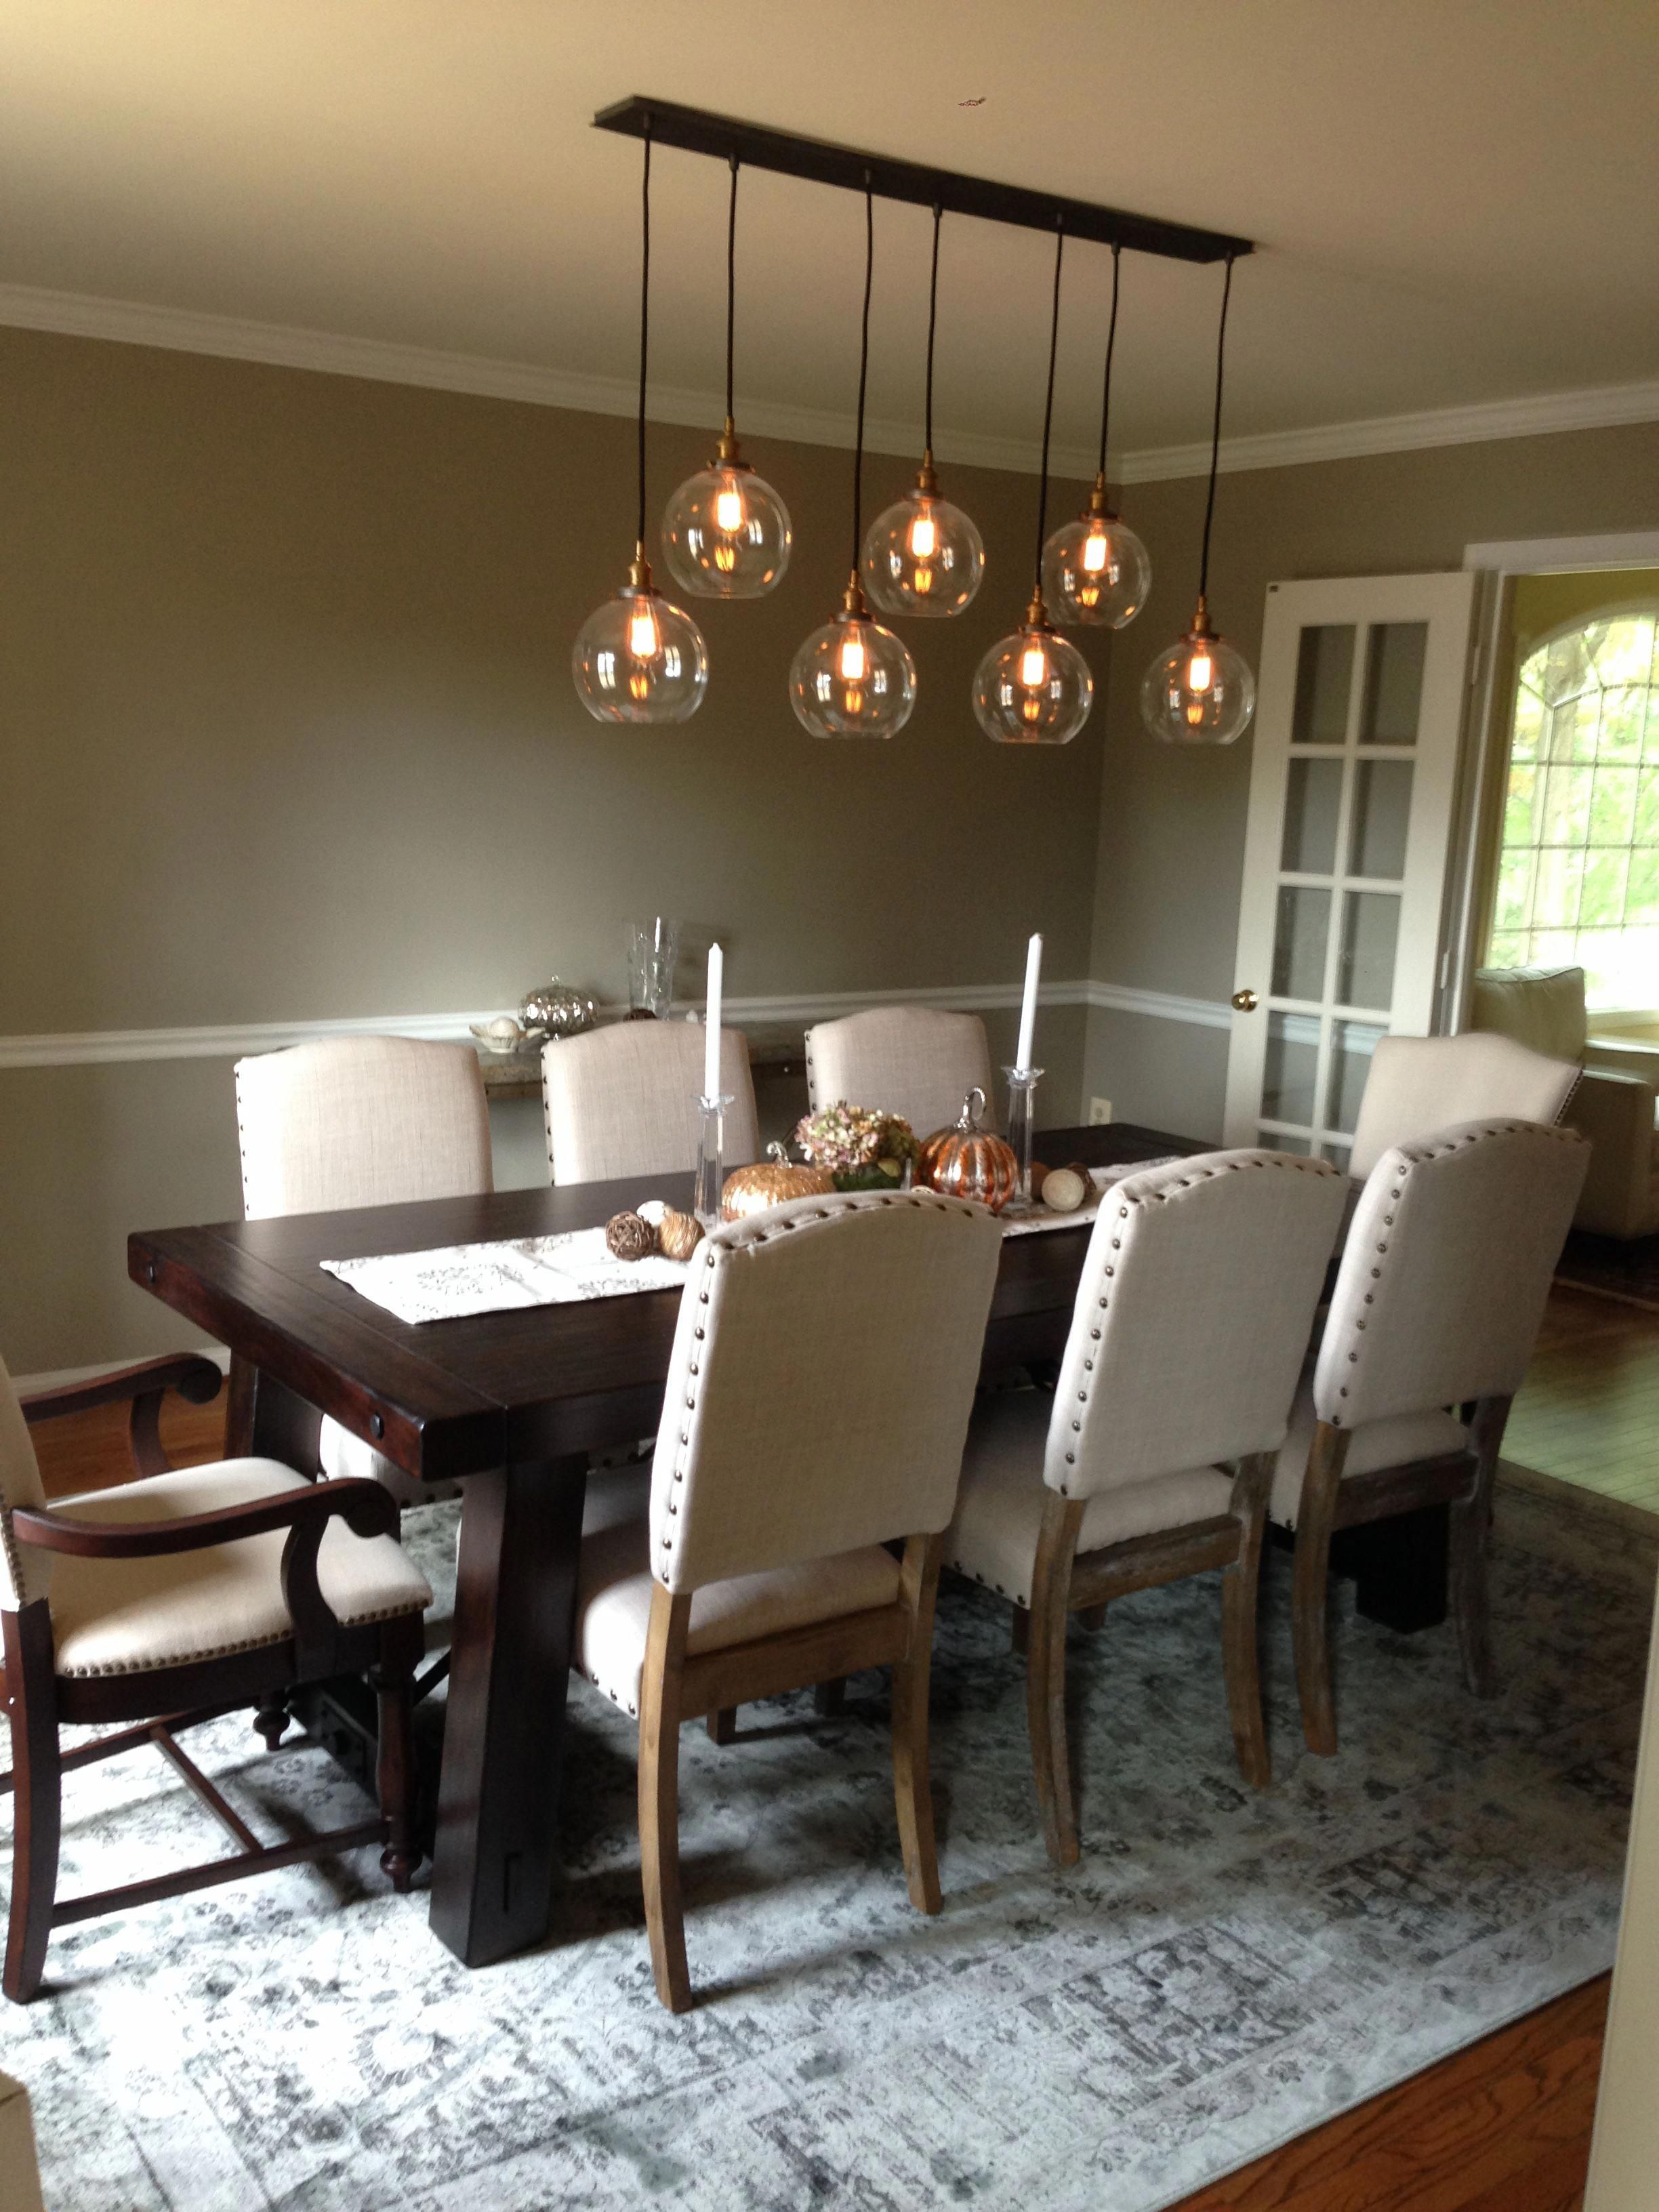 Begin By Choosing A Chandelier Or Other Low Hanging Lights To Mainly Illuminate Dining Room Light Fixtures Pendant Lighting Dining Room Dining Room Chandelier Dining room hanging light fixtures